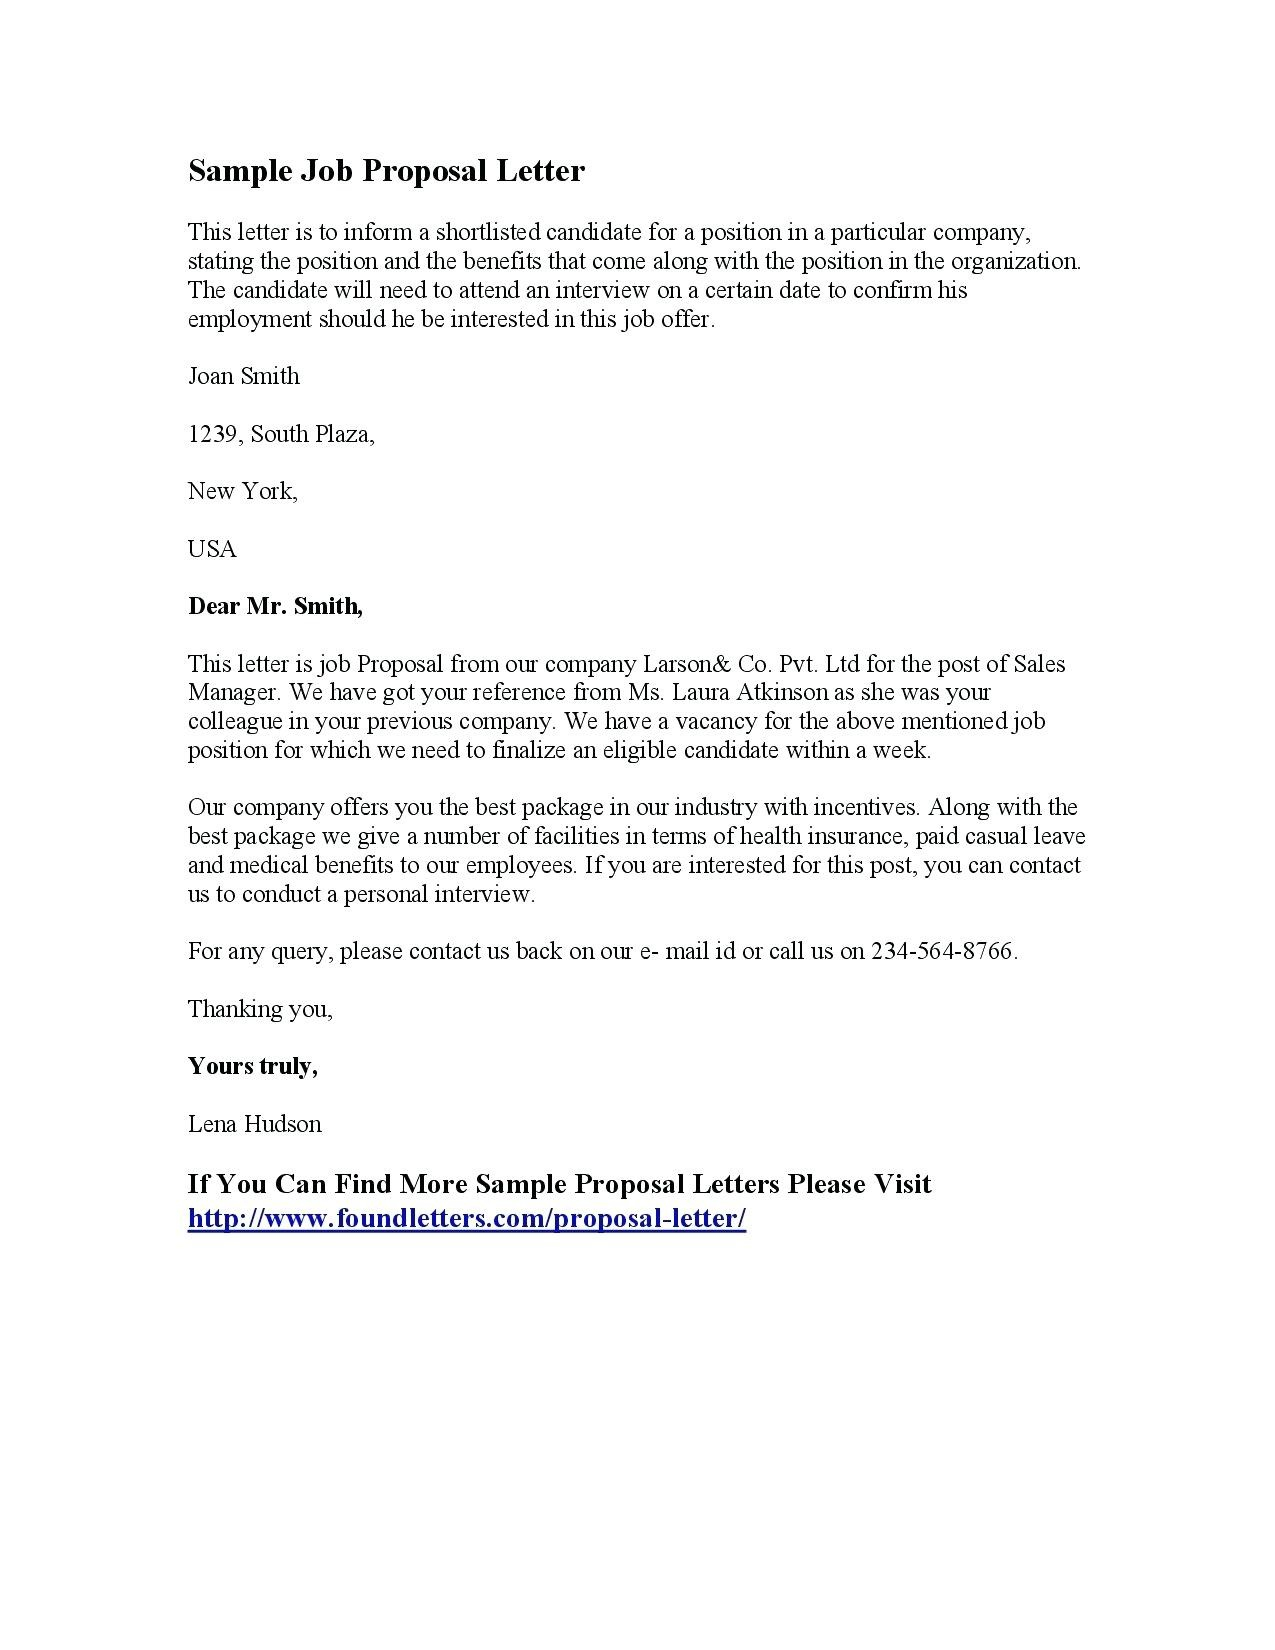 Job counter offer letter sample 4 night club nyc guide.